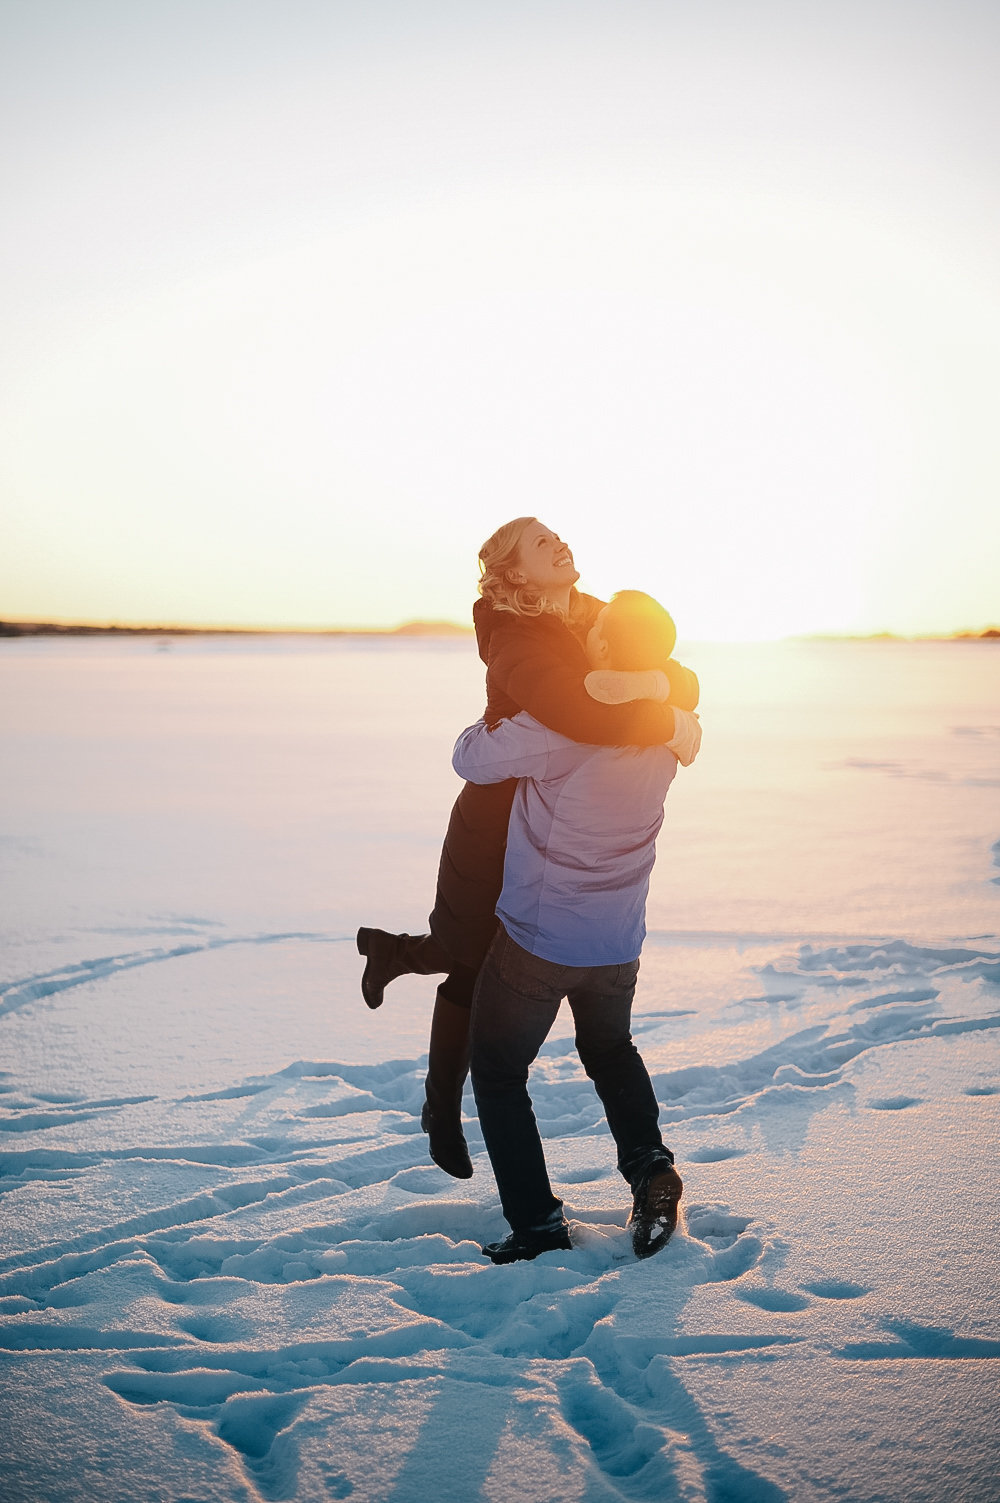 011_Erica Rose Photography_Anchorage Engagement Photographer